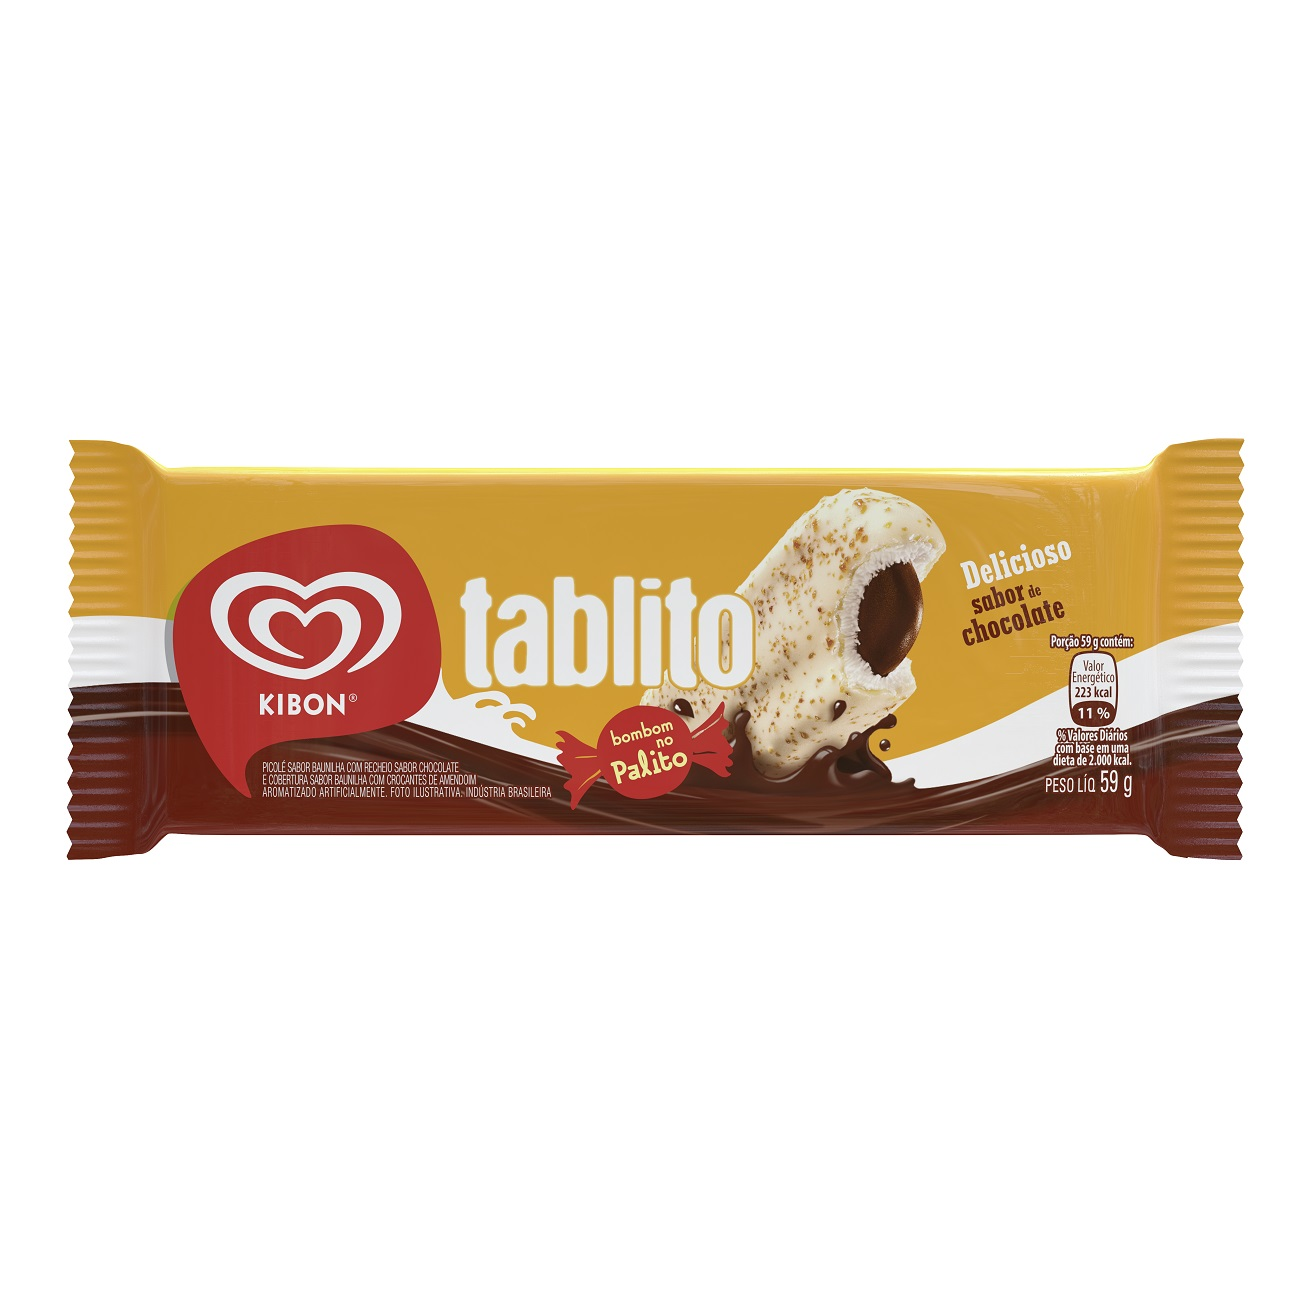 Sorvete Kibon Palito Tablito 72ML | Caixa com 24